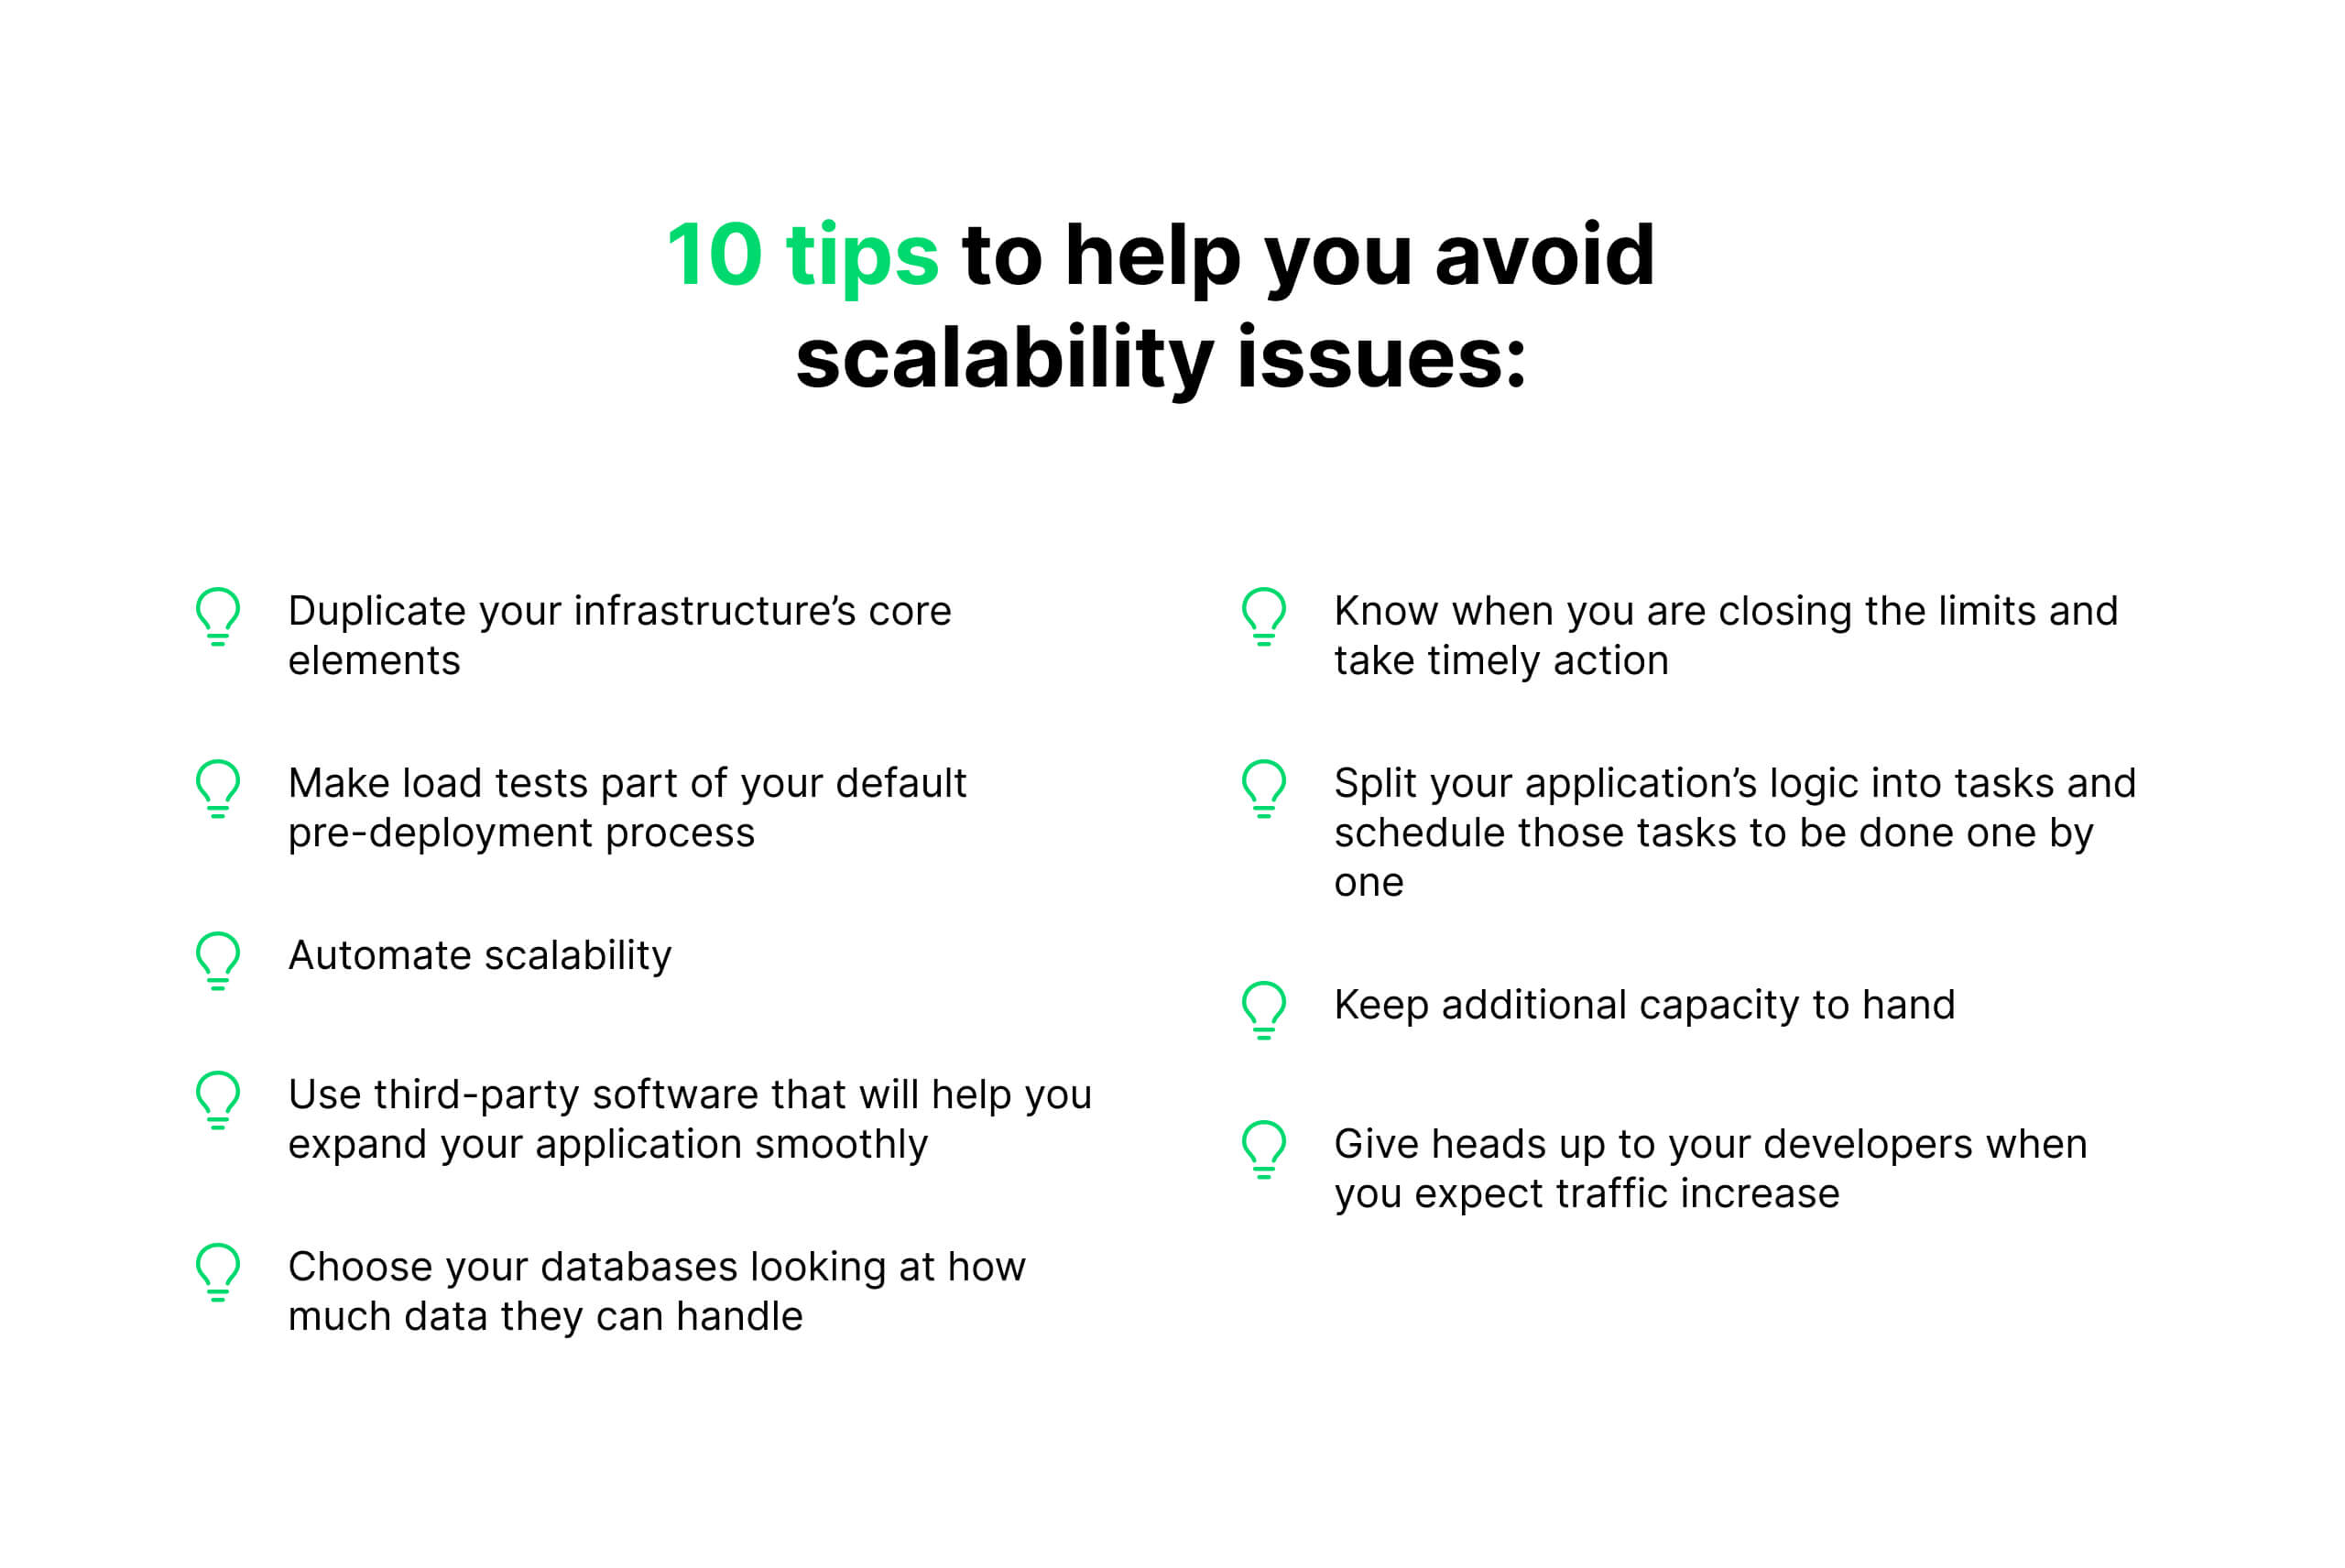 10 tips to avoid scalability issues